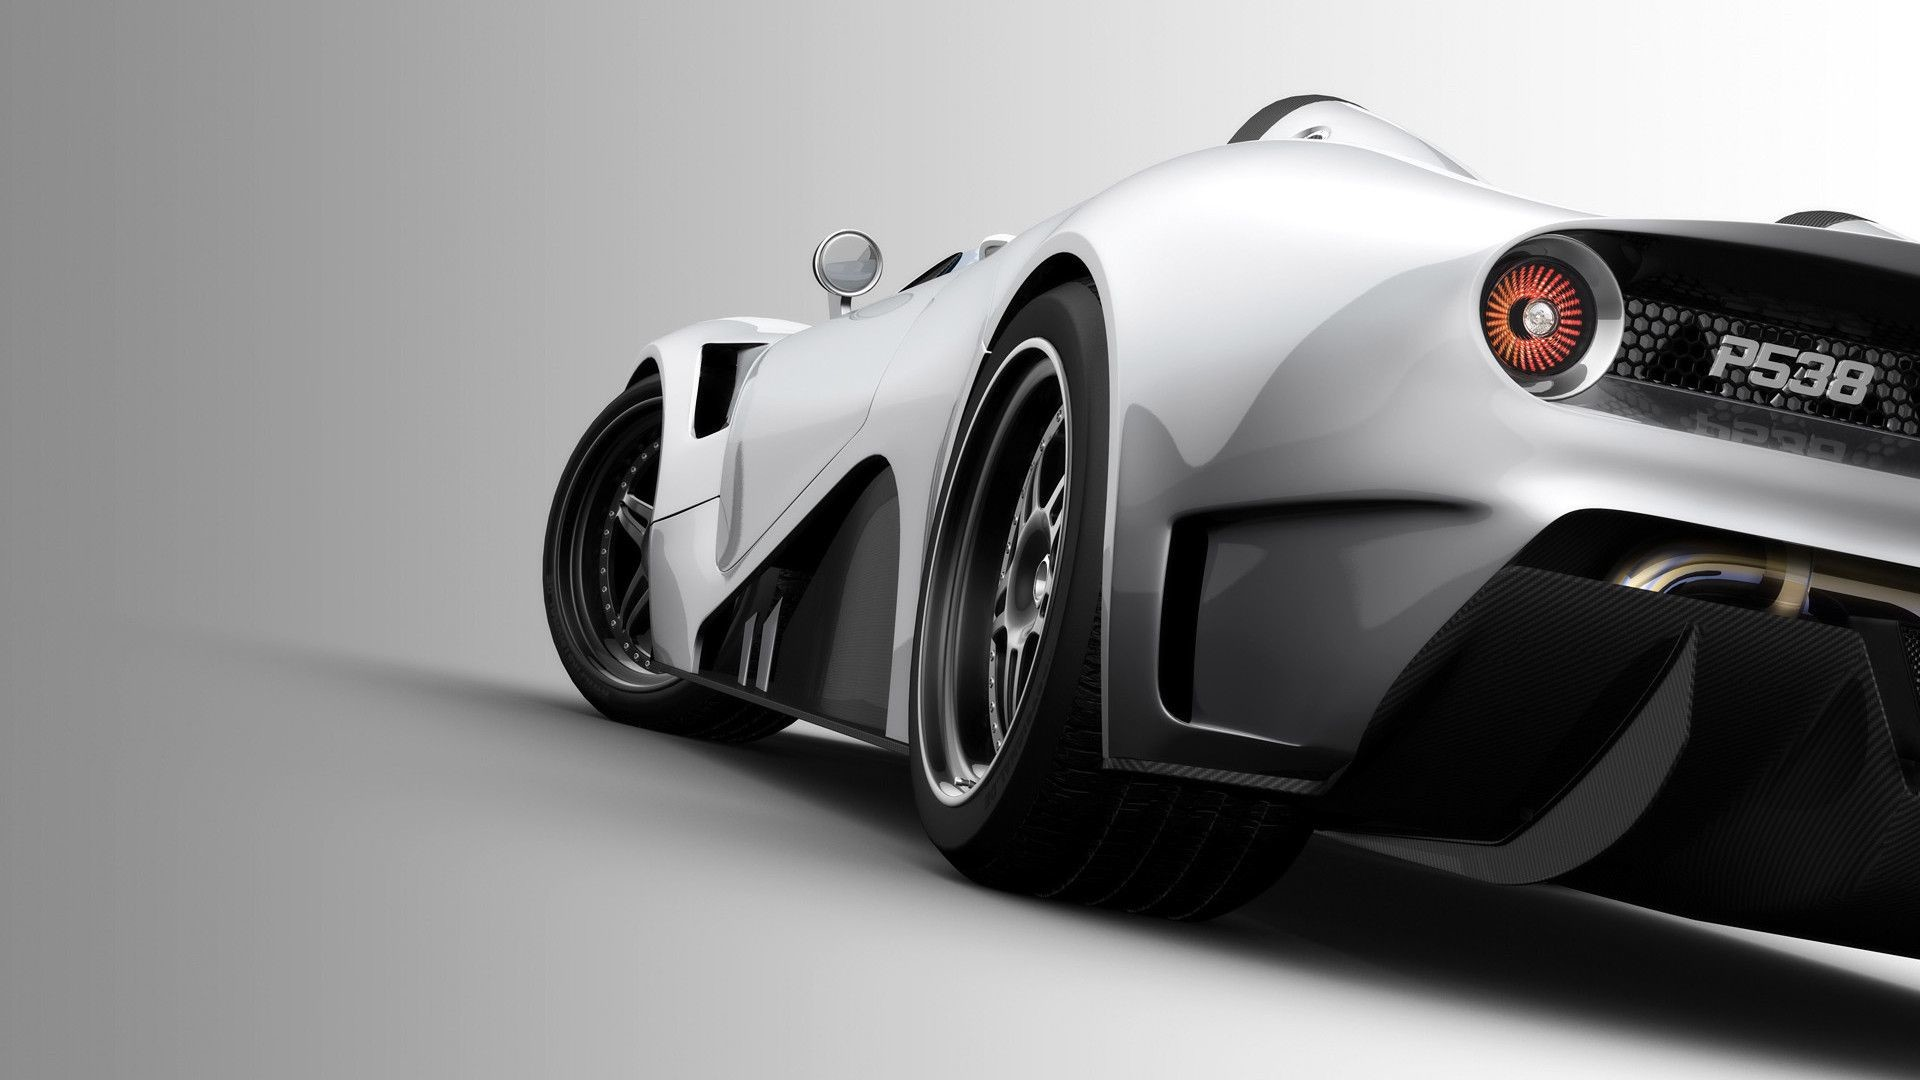 1920x1080 Coolest Hd Car Backgrounds. super sport cars wallpapers